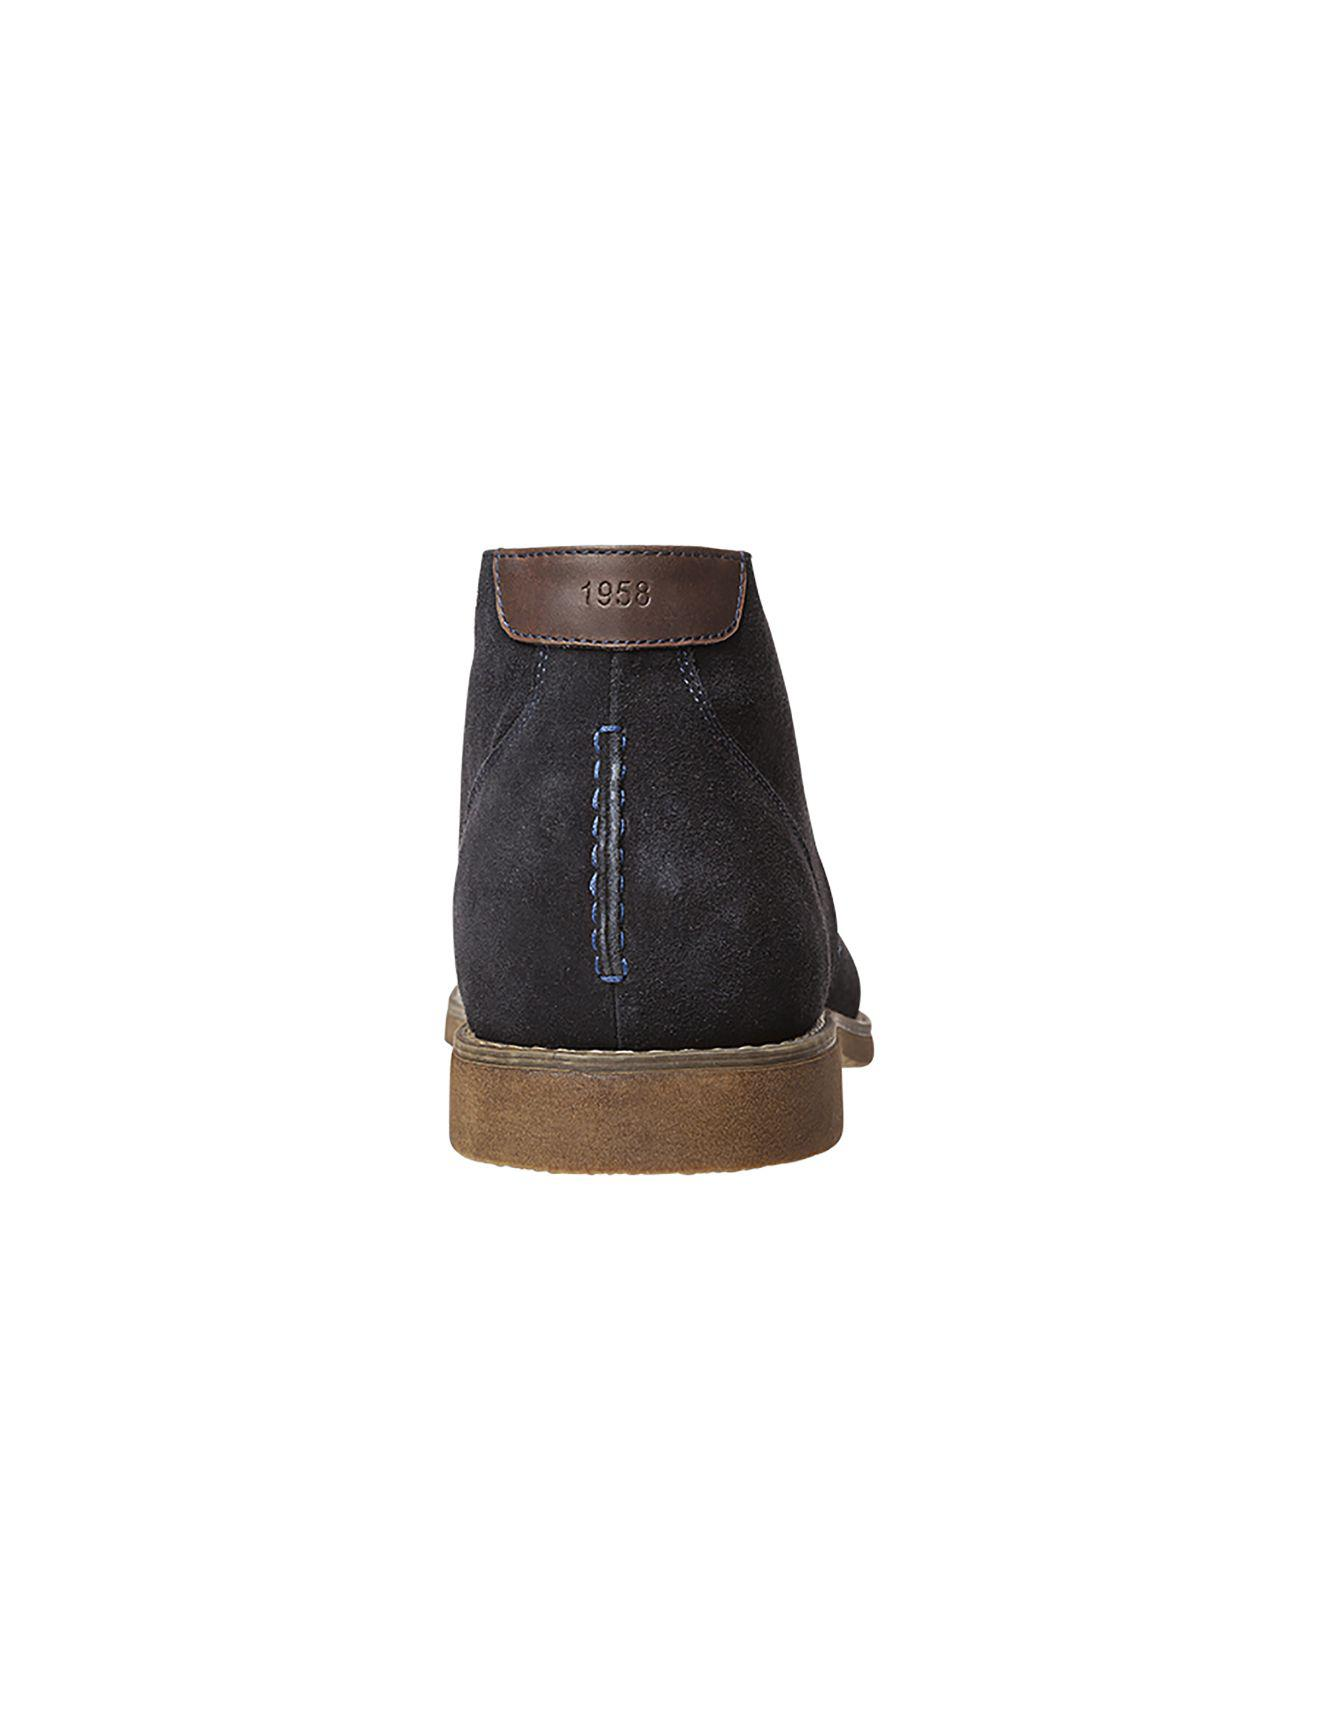 1f4ecb448c2 Hush Puppies Terminal Suede Lace Up Desert Boot in Blue for Men - Lyst